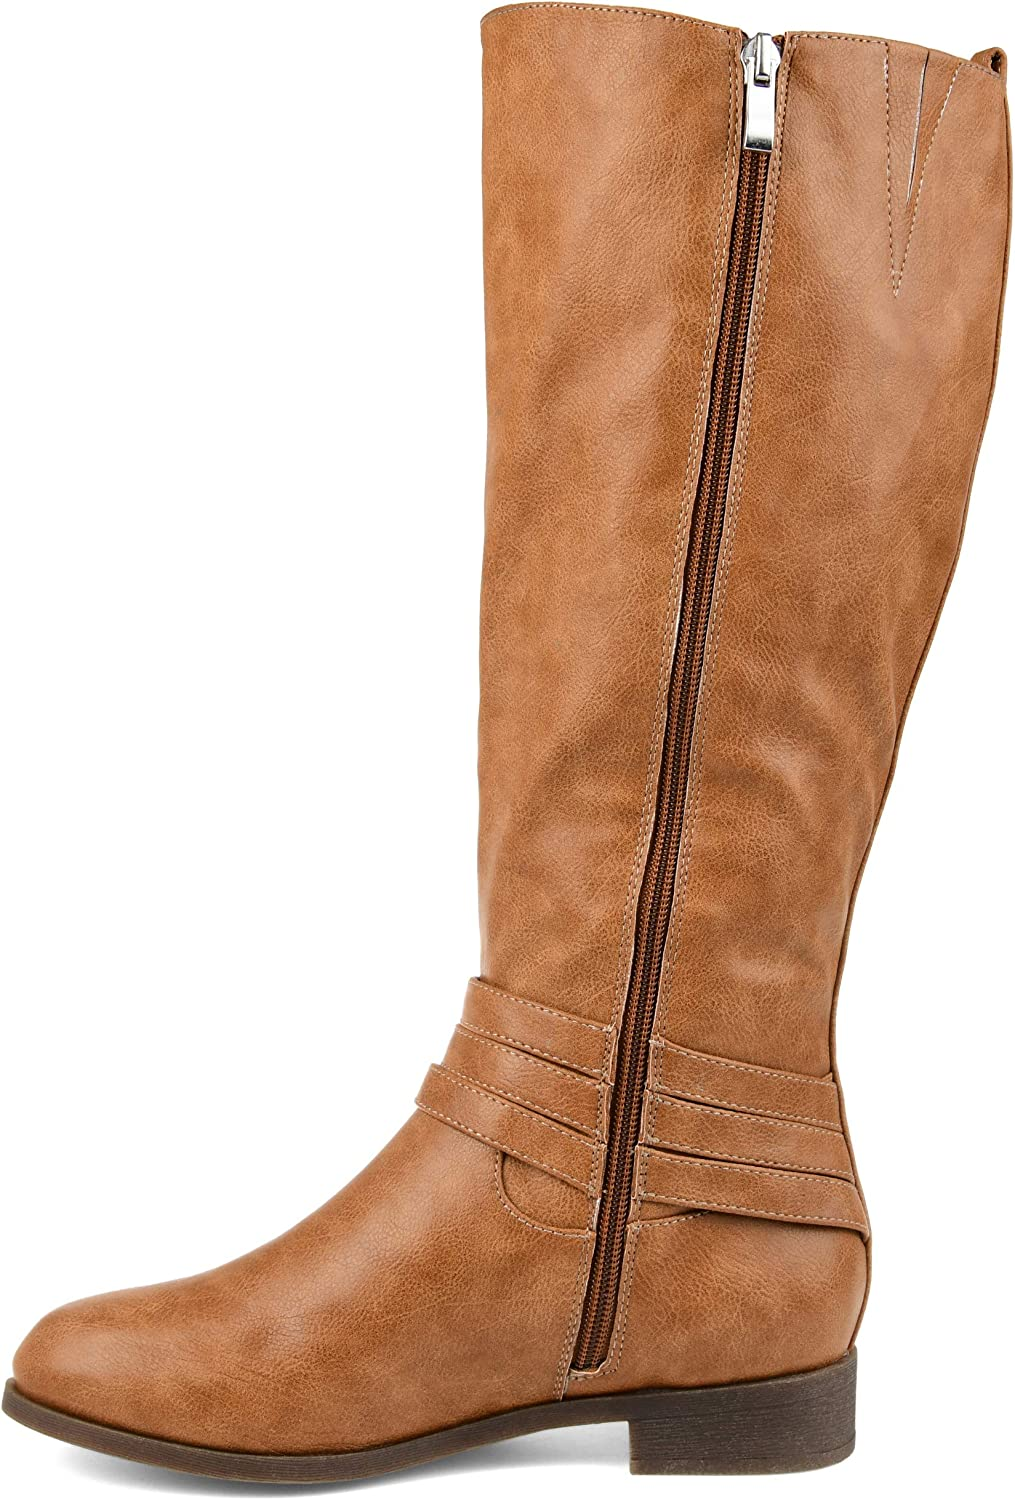 Journee Collection Comfort Womens Ivie Regular Wide Calf Extra Wide Calf Boot